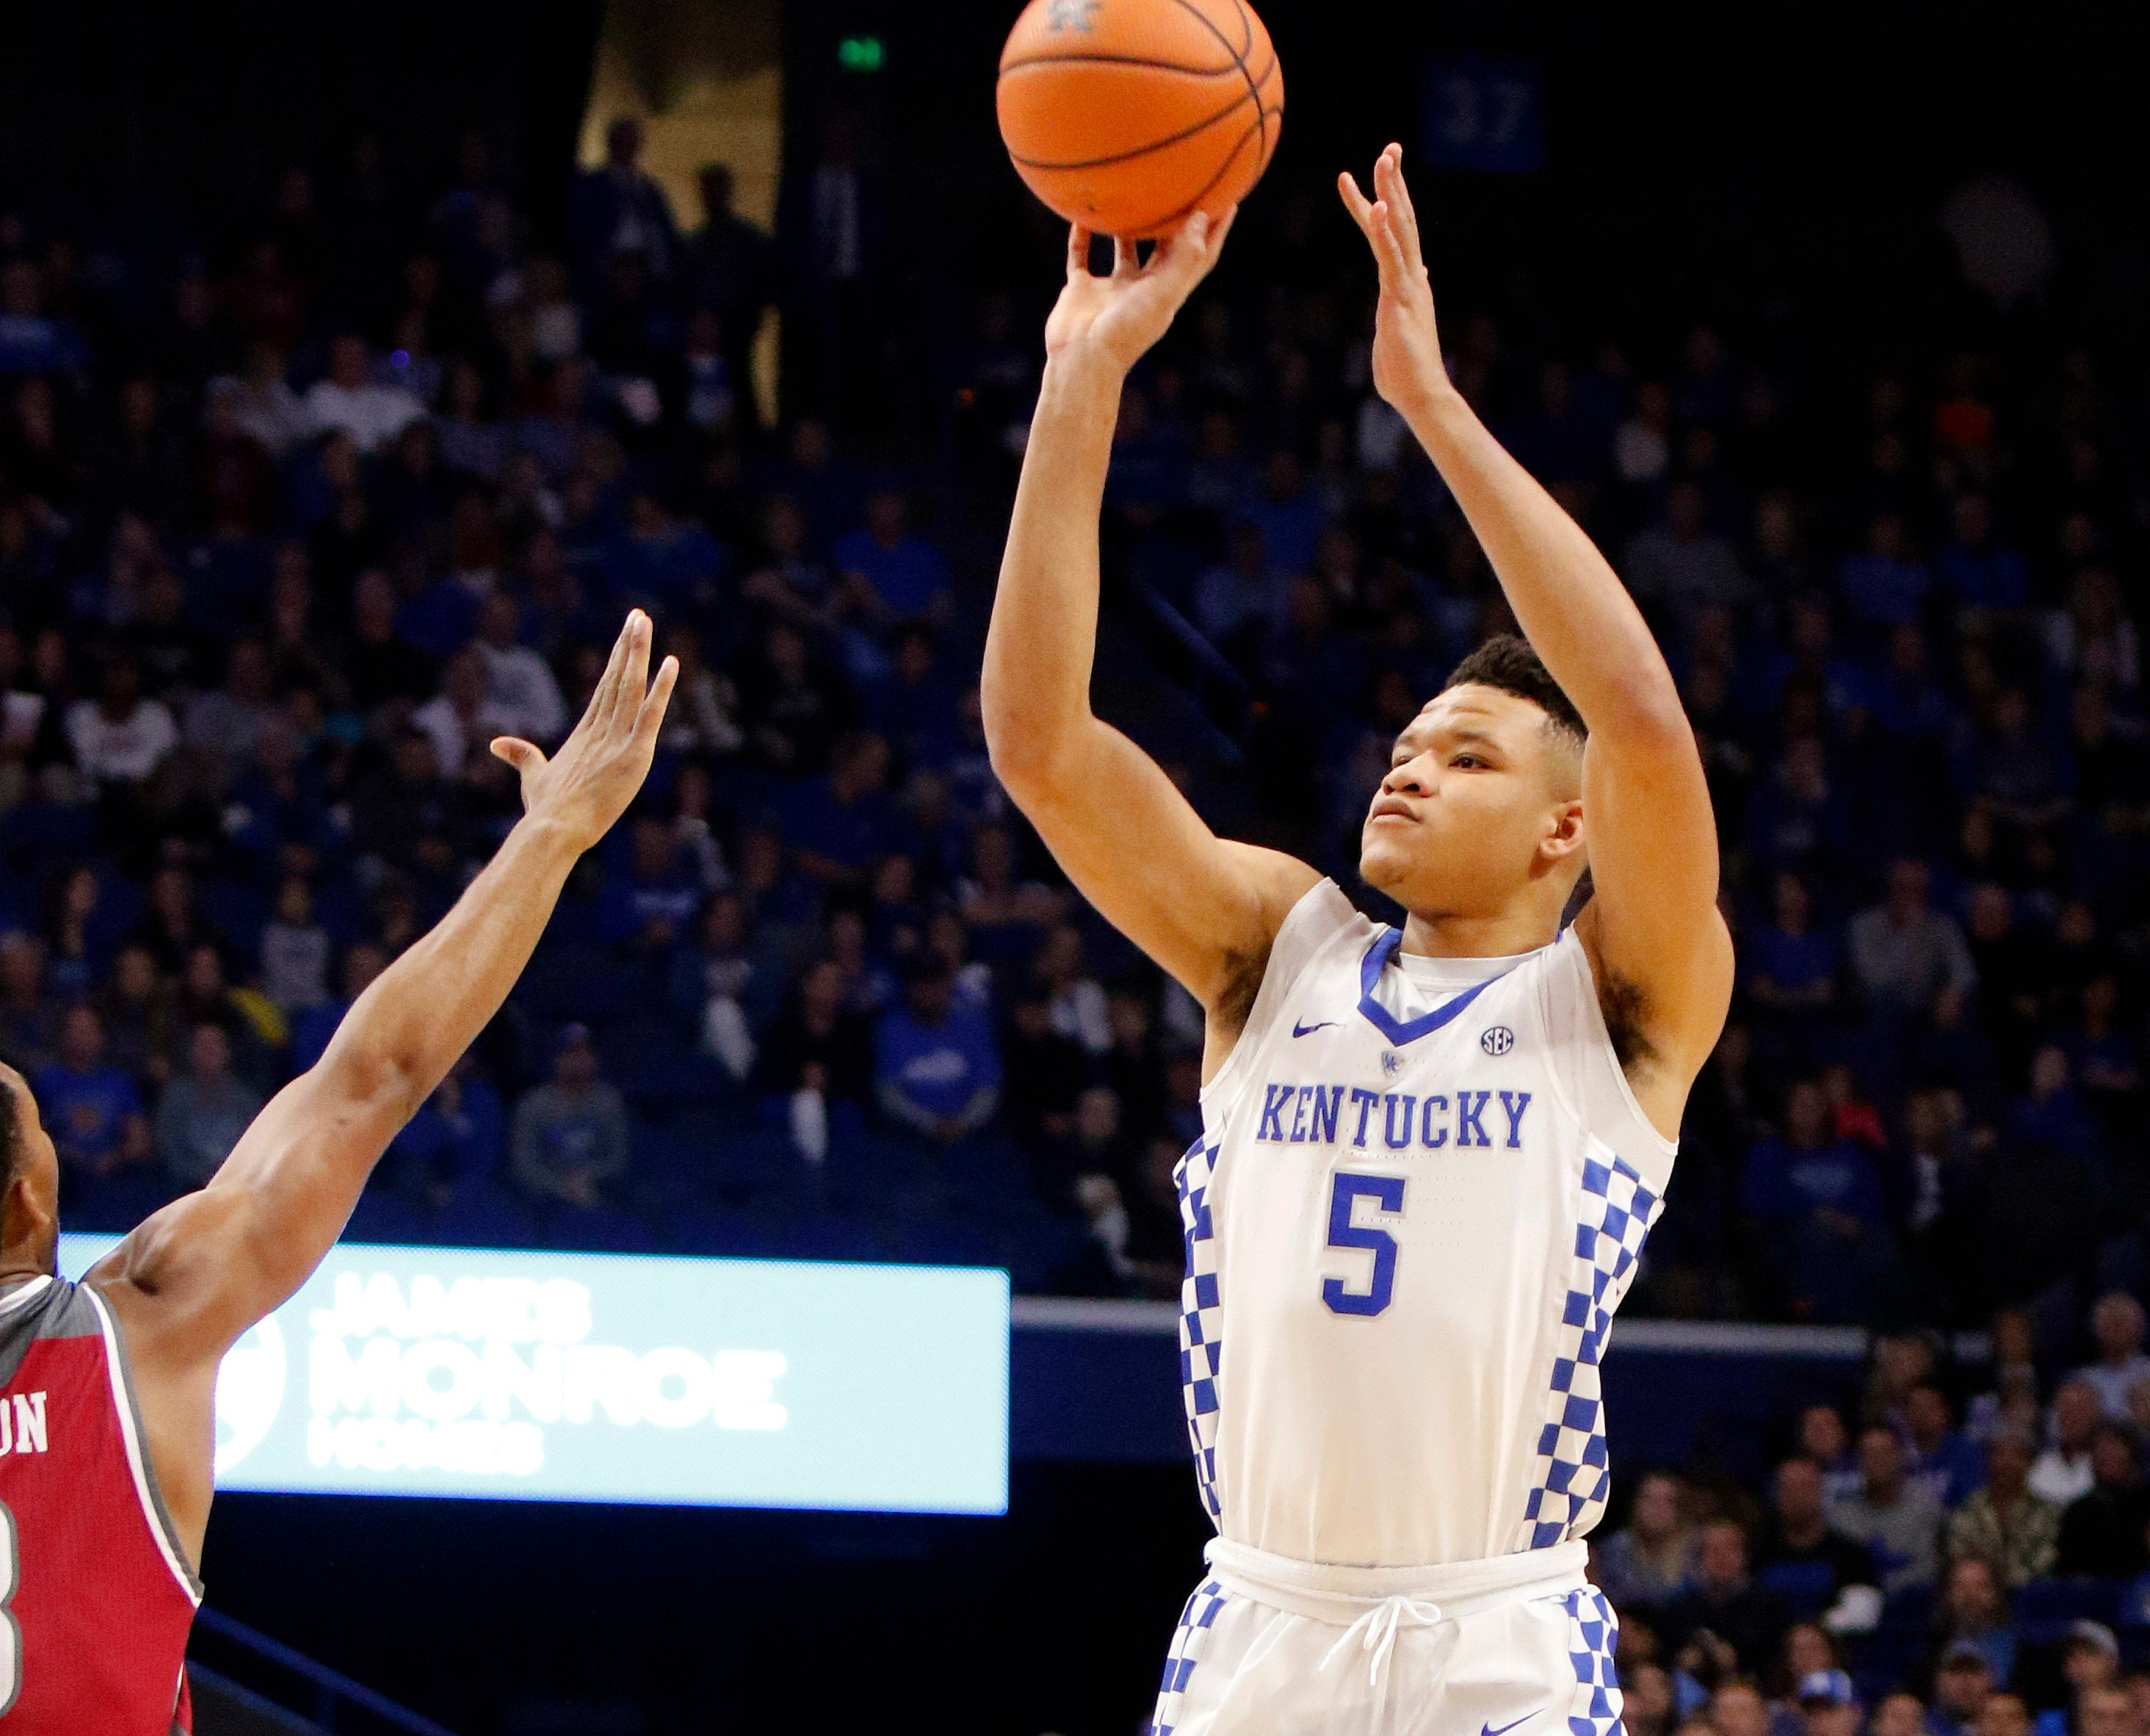 Vols take down no. 17 Kentucky, 76-65